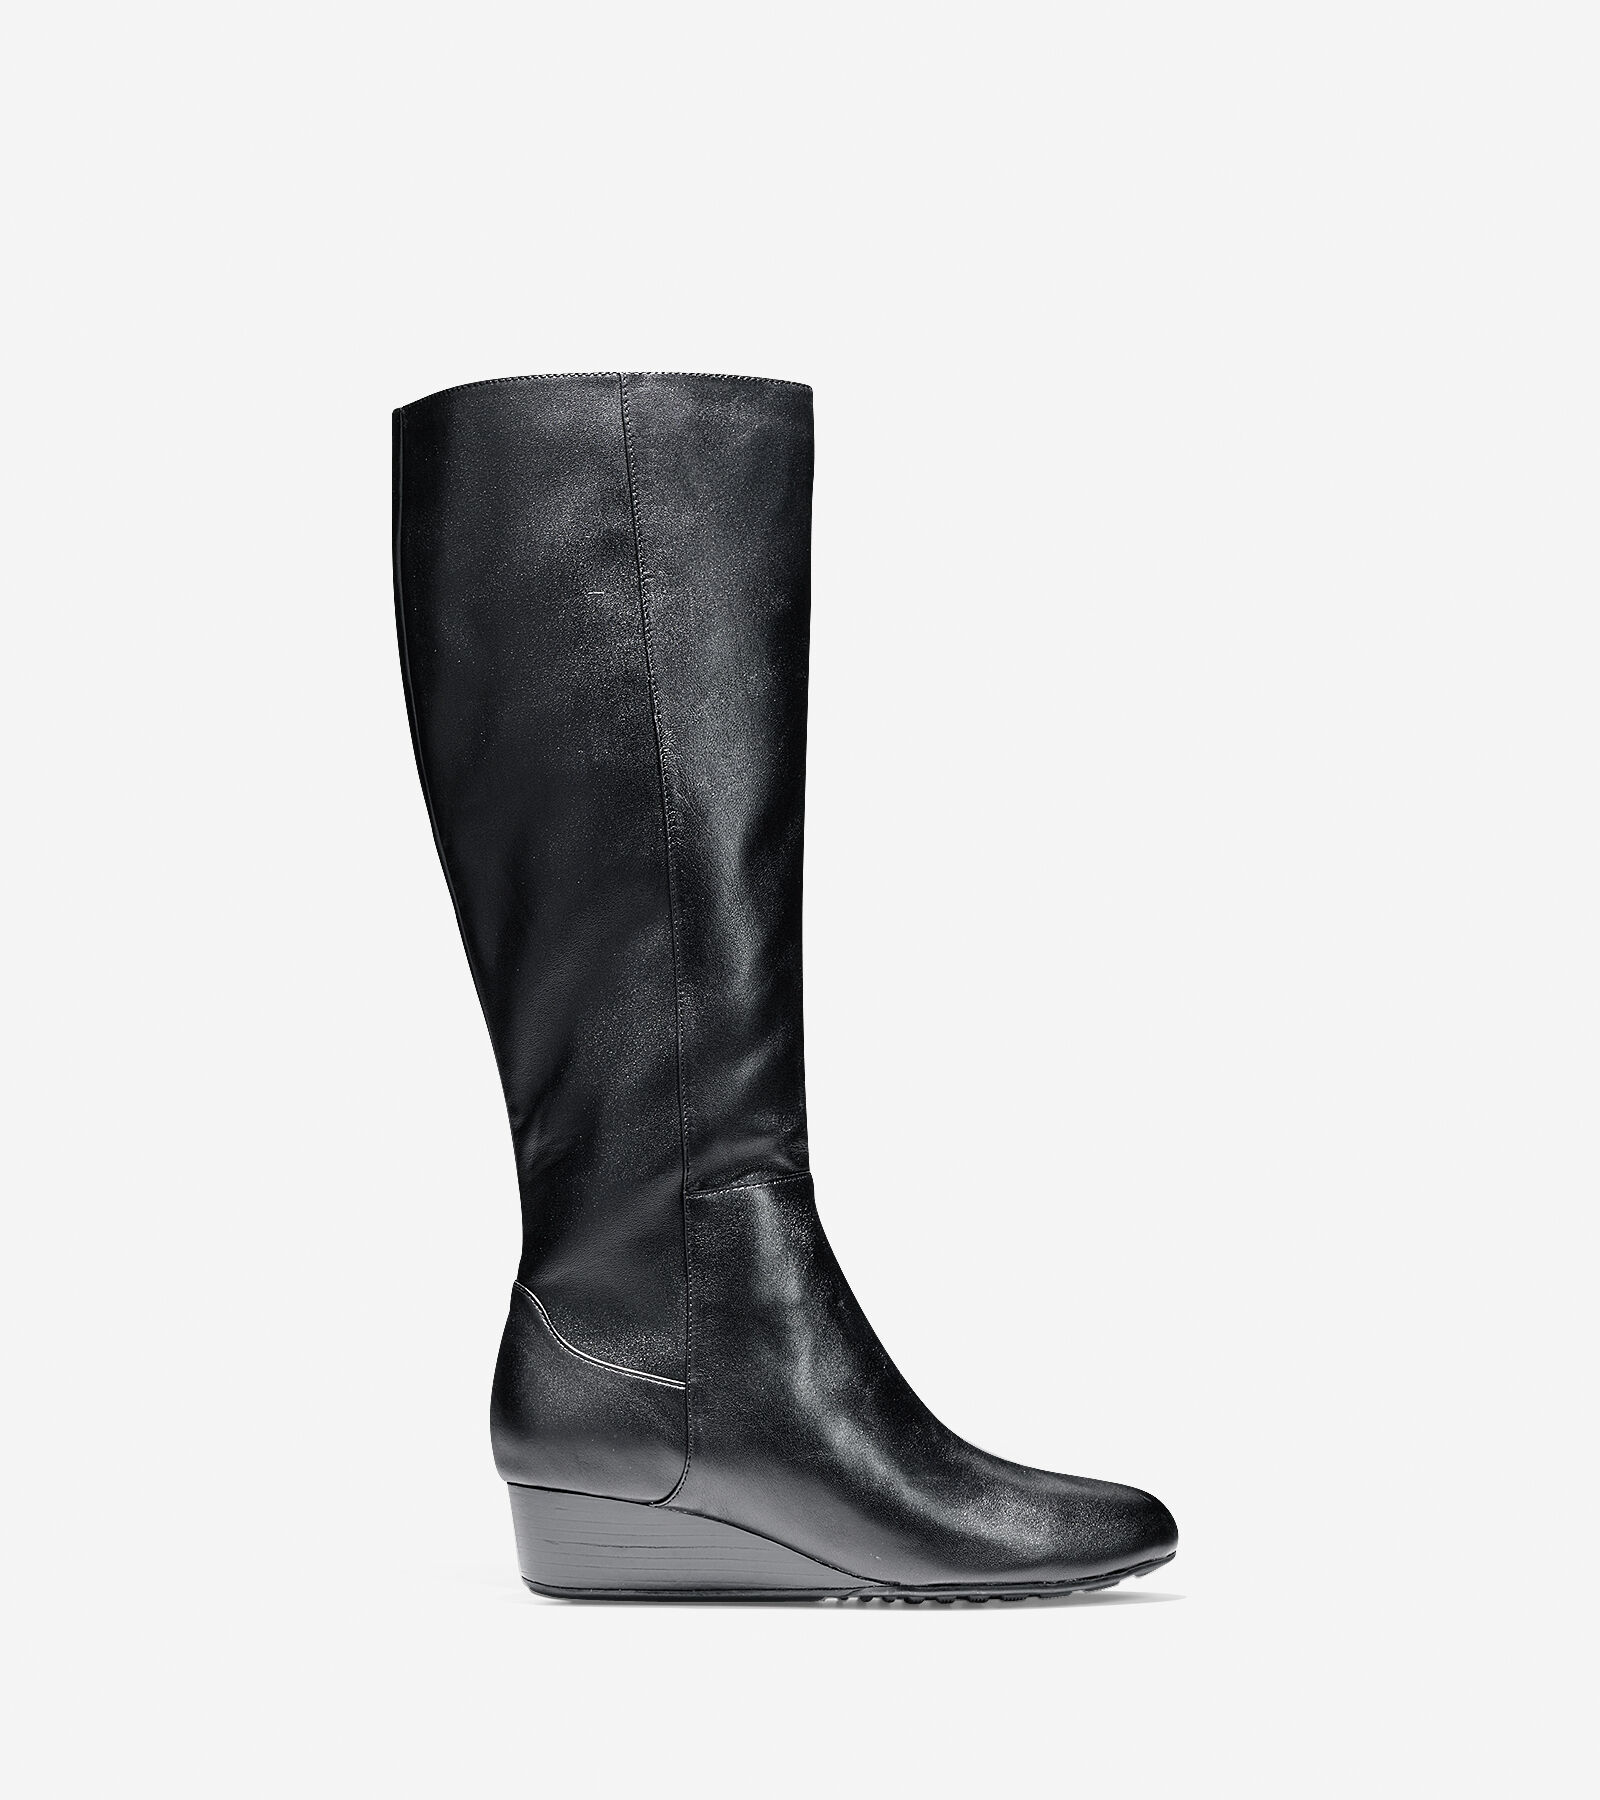 buy cheap finishline Cole Haan Suede Wedge Knee-High Boots genuine cheap price cheap sale view sale huge surprise deals cheap price G7e0ImE